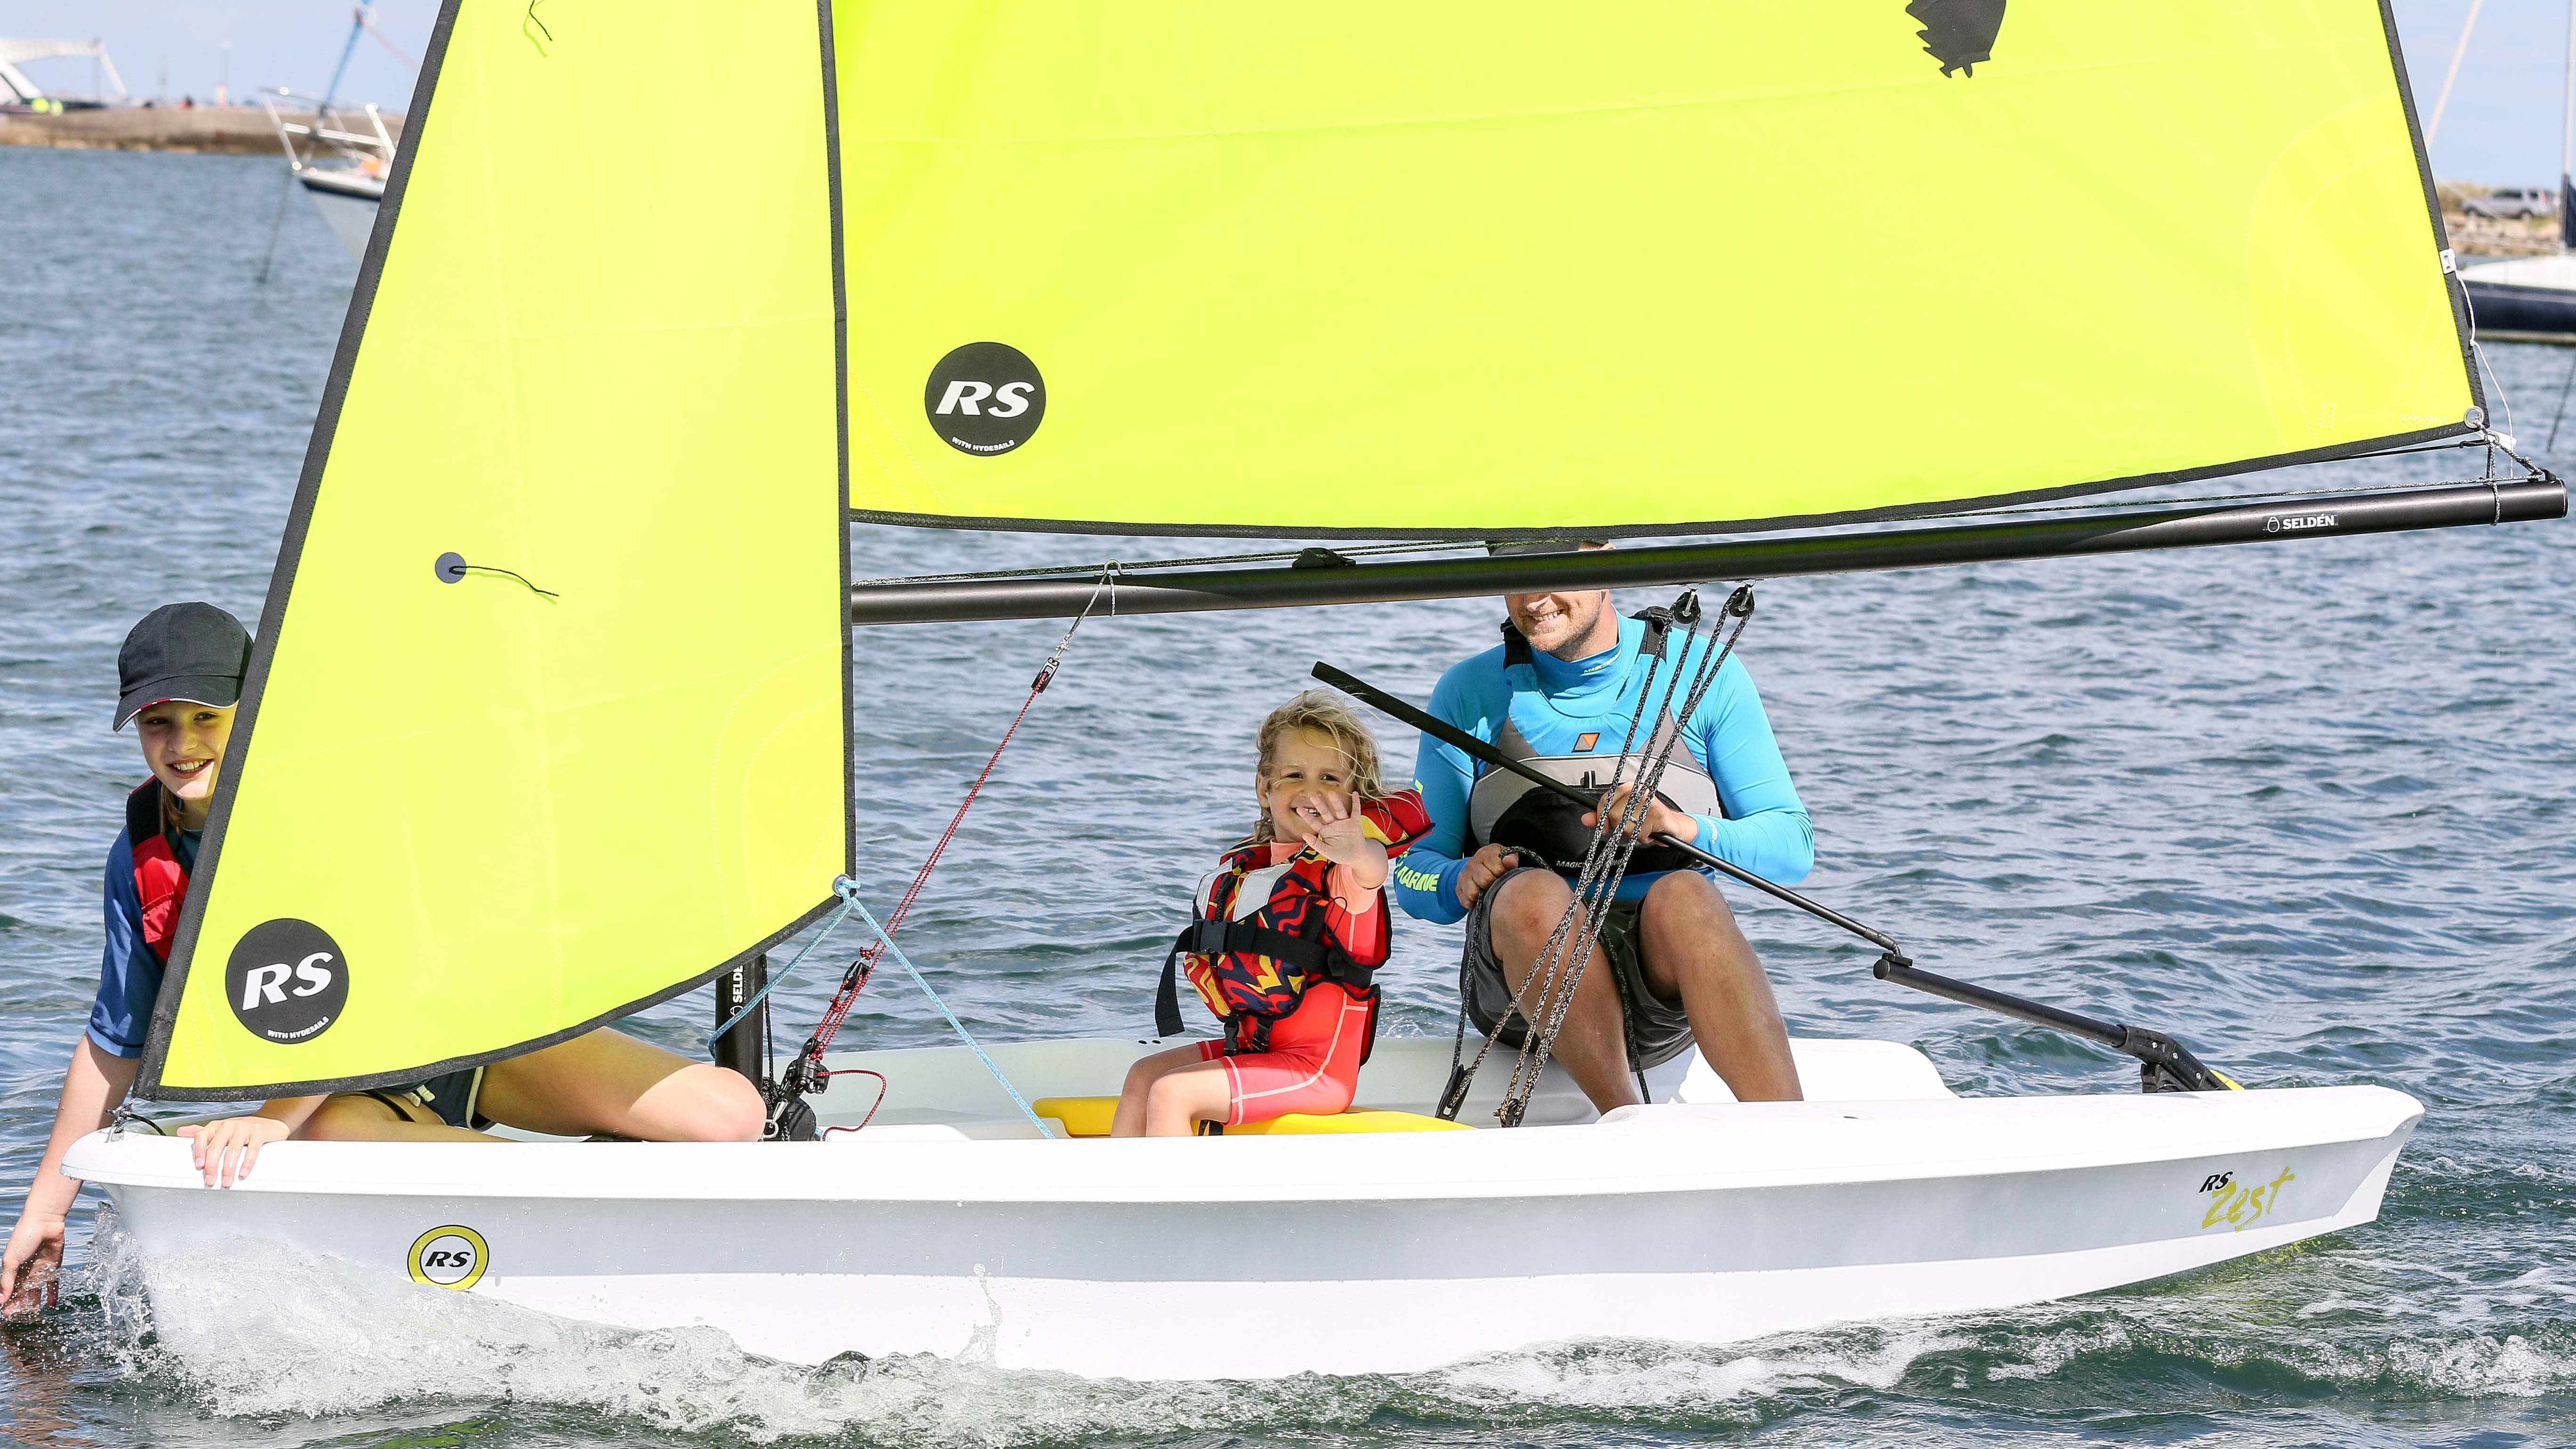 RS Singlehanded